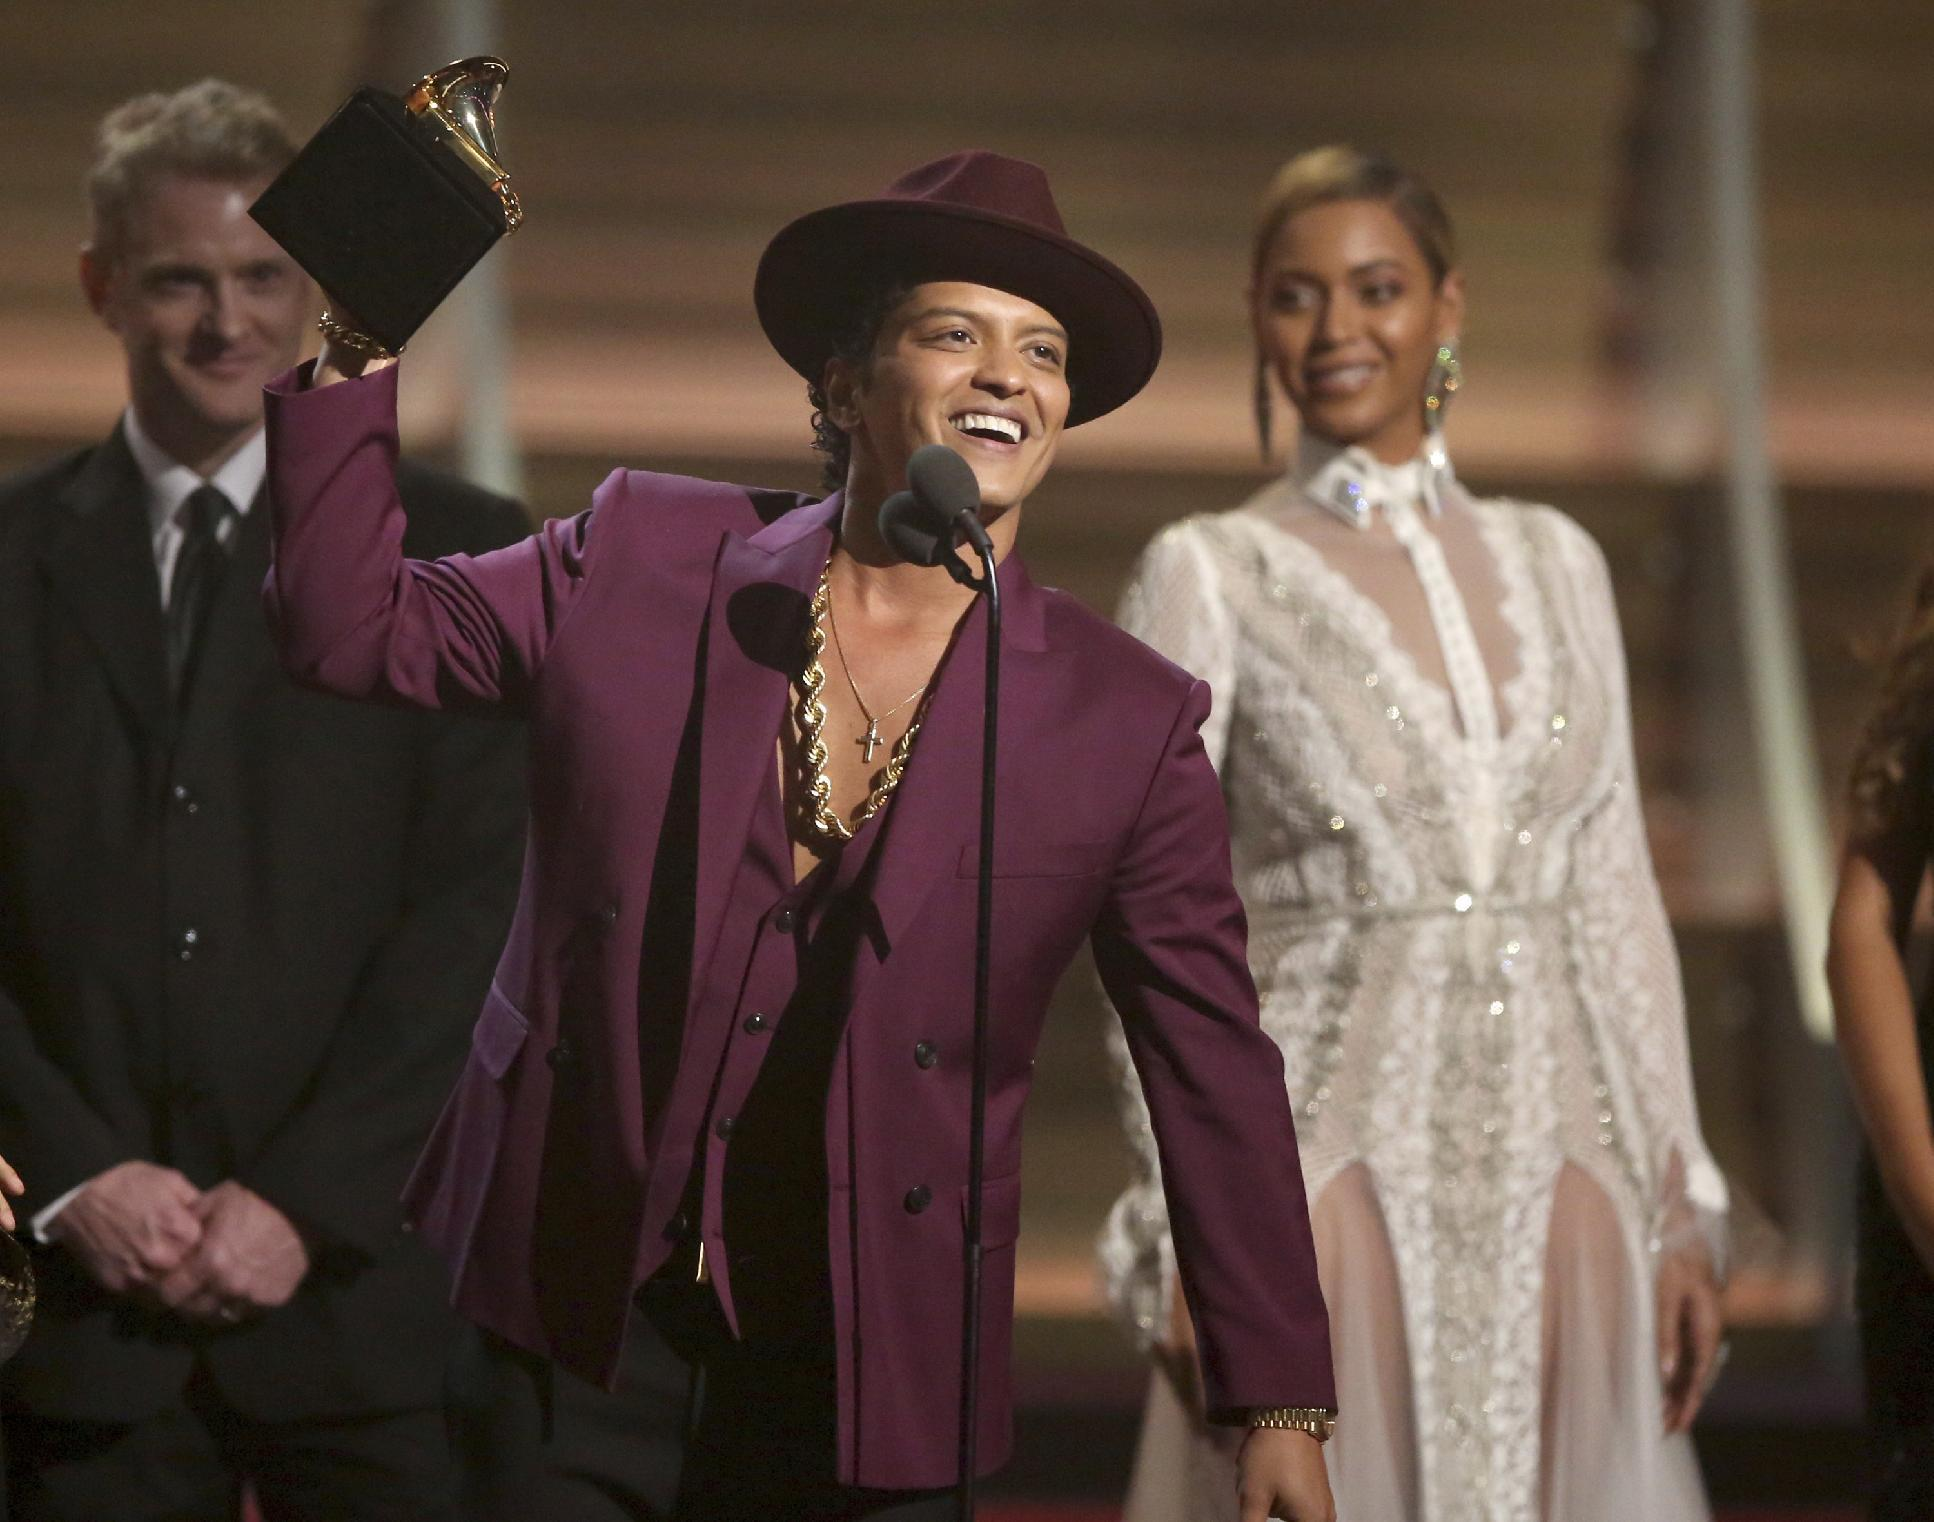 Bruno Mars is pop's ultimate party boy with hit '24K Magic'